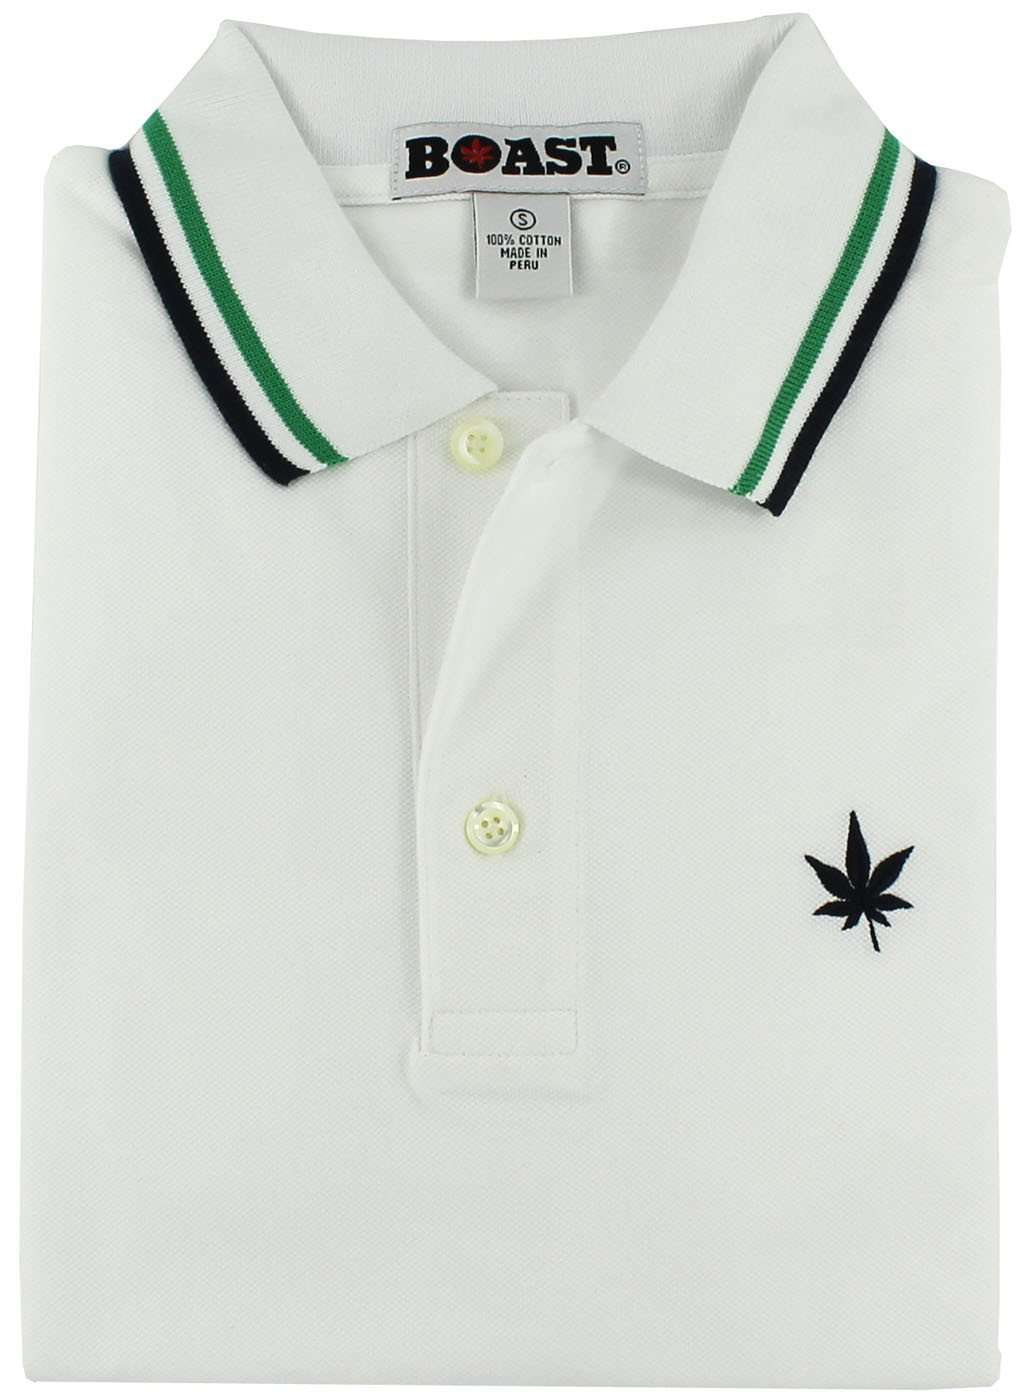 Boast Tipped Polo In White With Kelly Green And Navy Country Club Prep